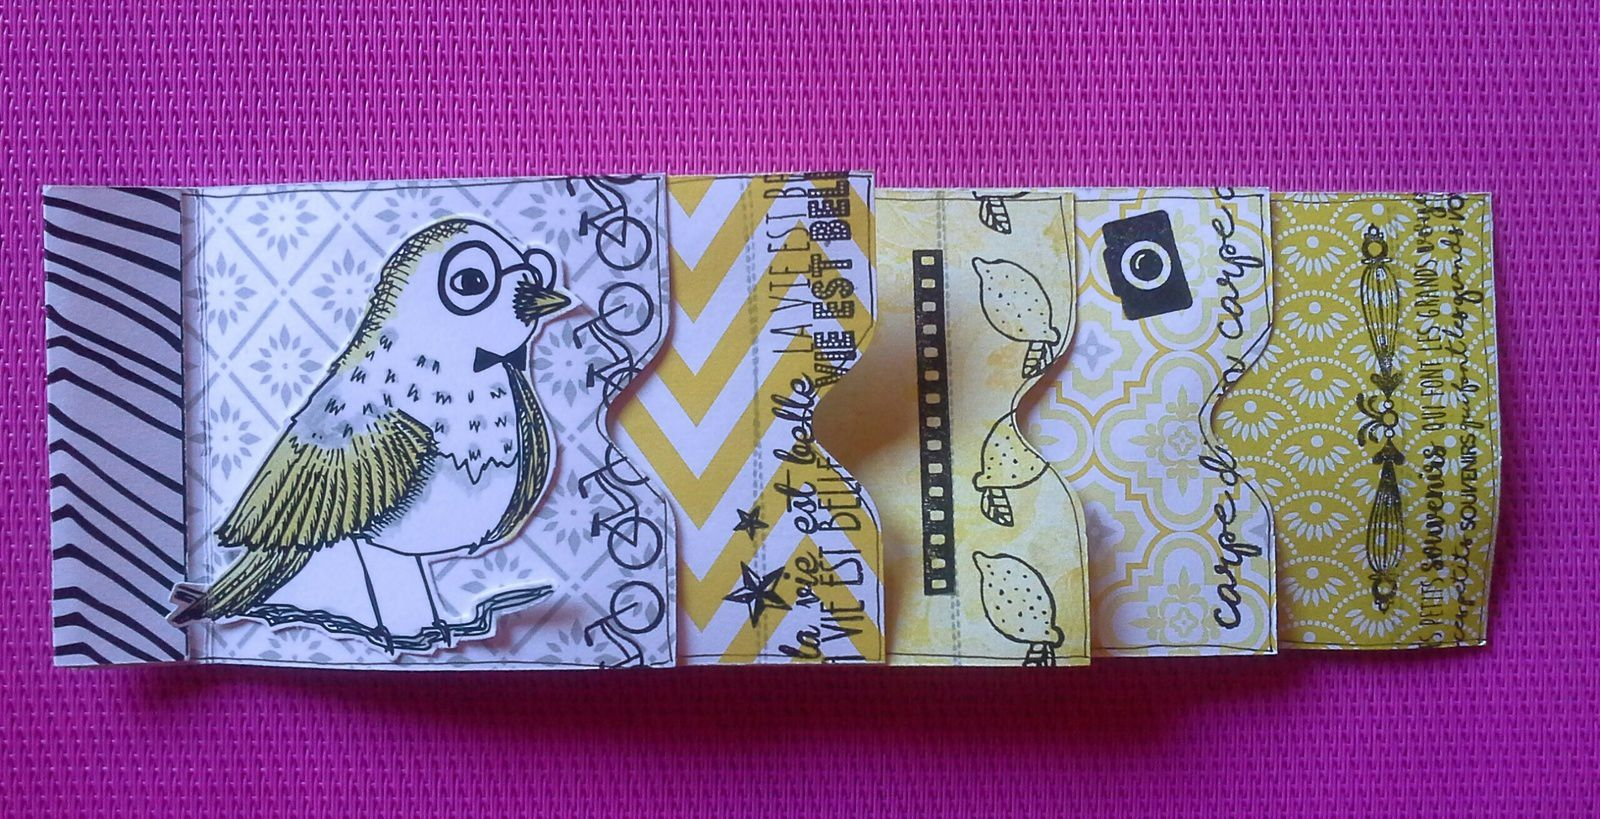 Miniset d'avril Scrap Plaisir - mini album pepsy